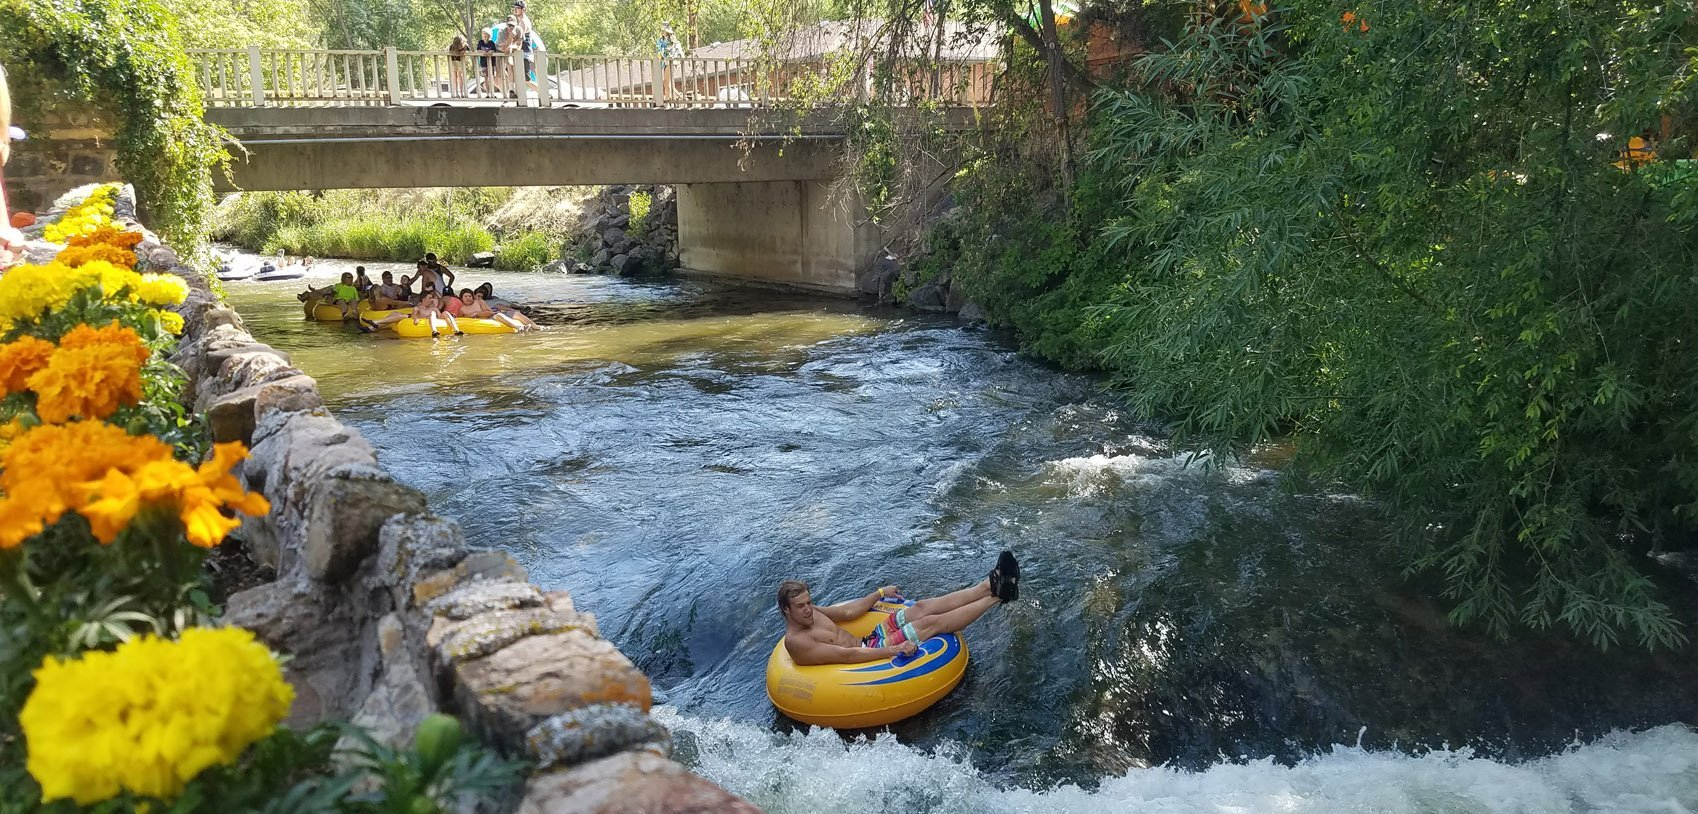 Tubing the Portneuf River in Lava Hot Springs Idaho